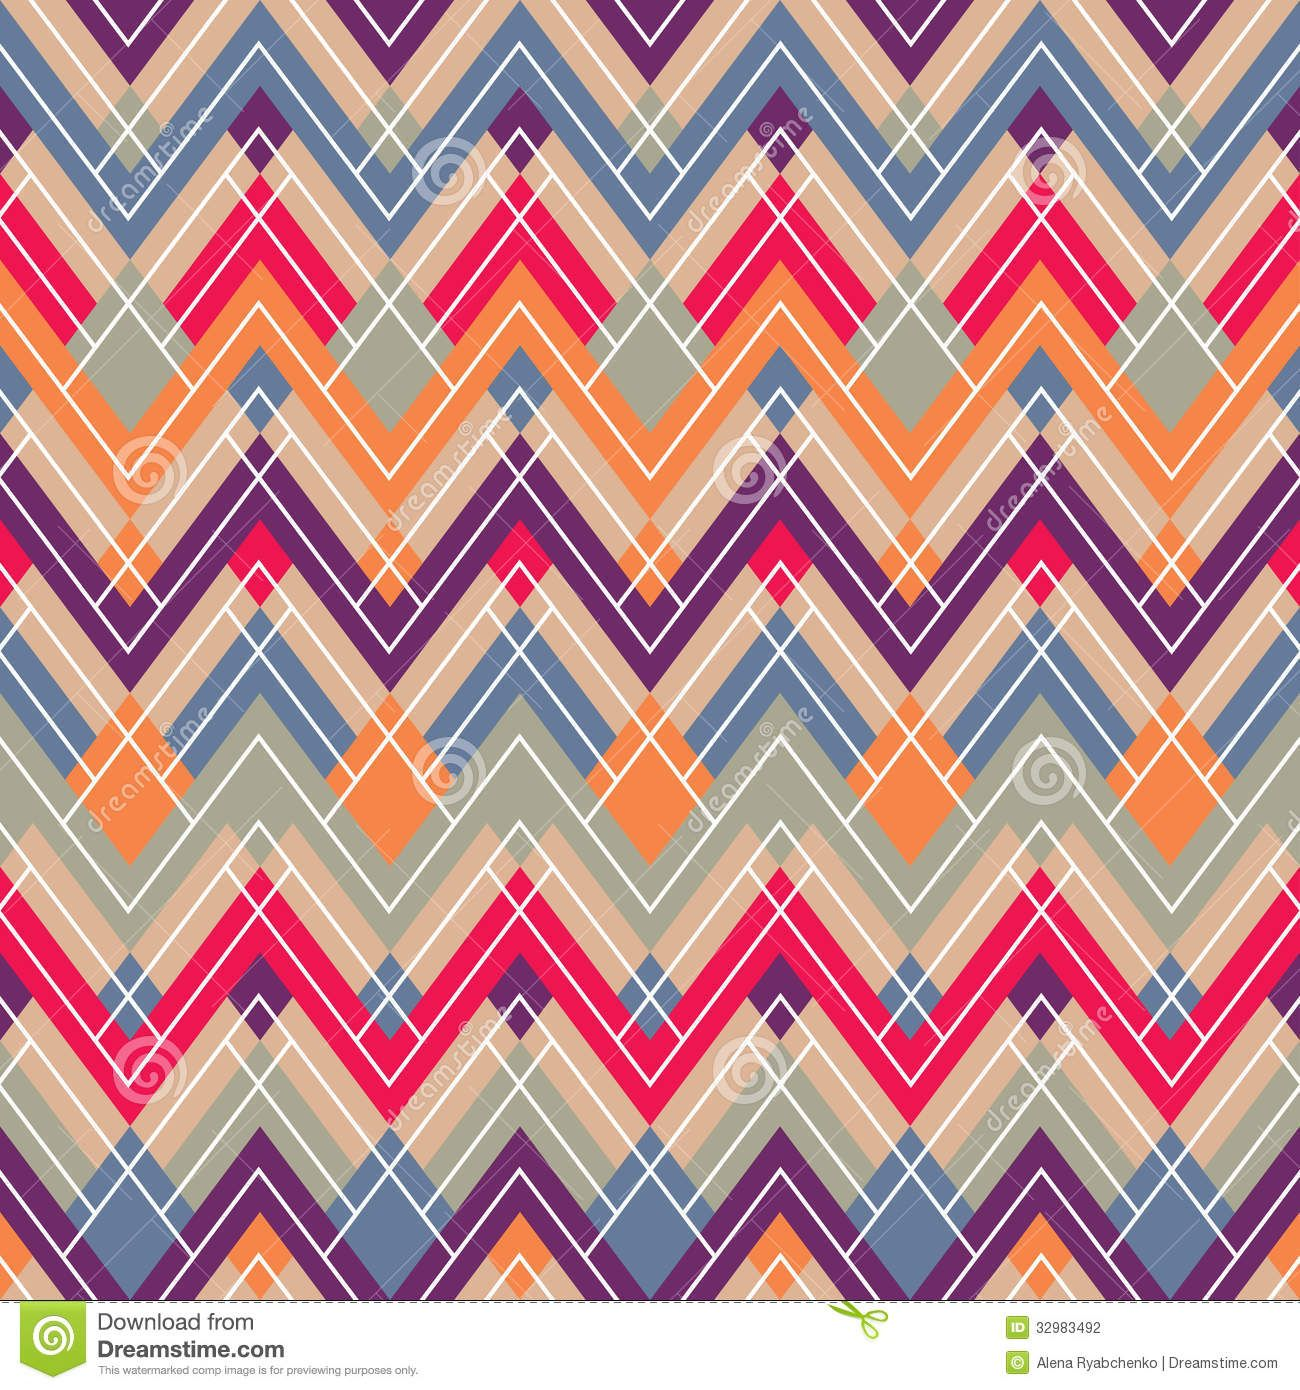 Geometric background patterns geometric colorful - Geometric wallpaper colorful ...